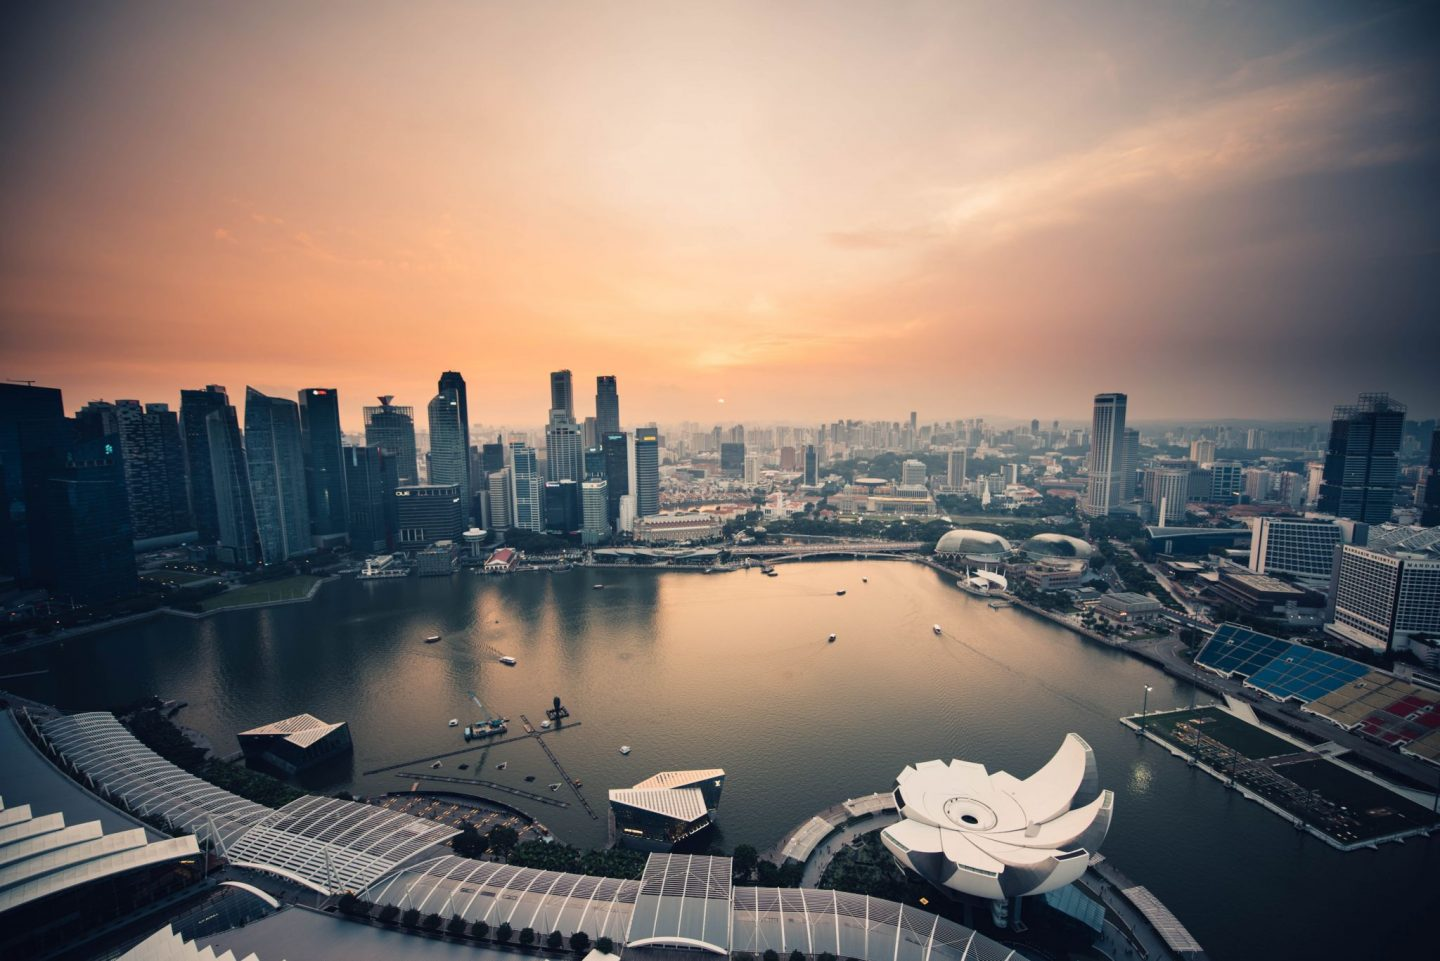 Top 10 must incredible cities - Singapore